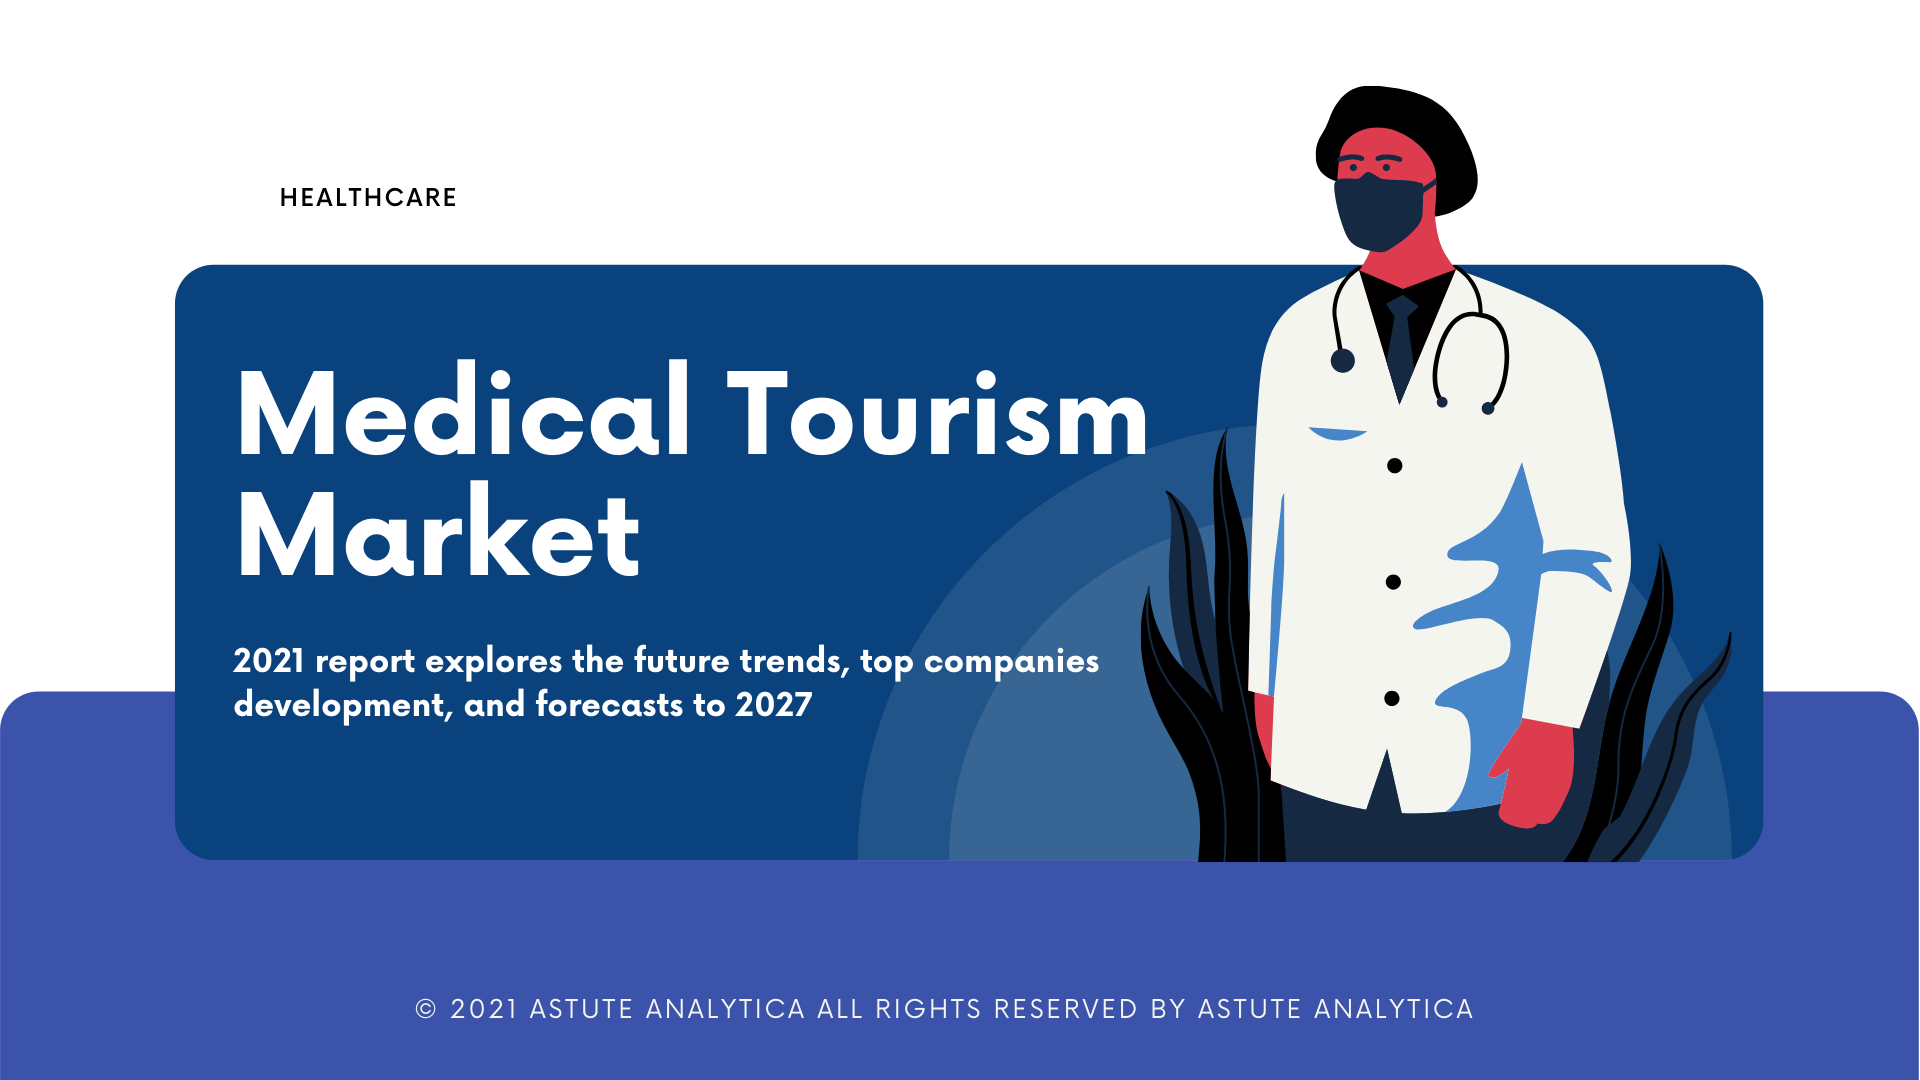 Medical Tourism Market 2021 report explores the future trends, development, and forecasts to 2027